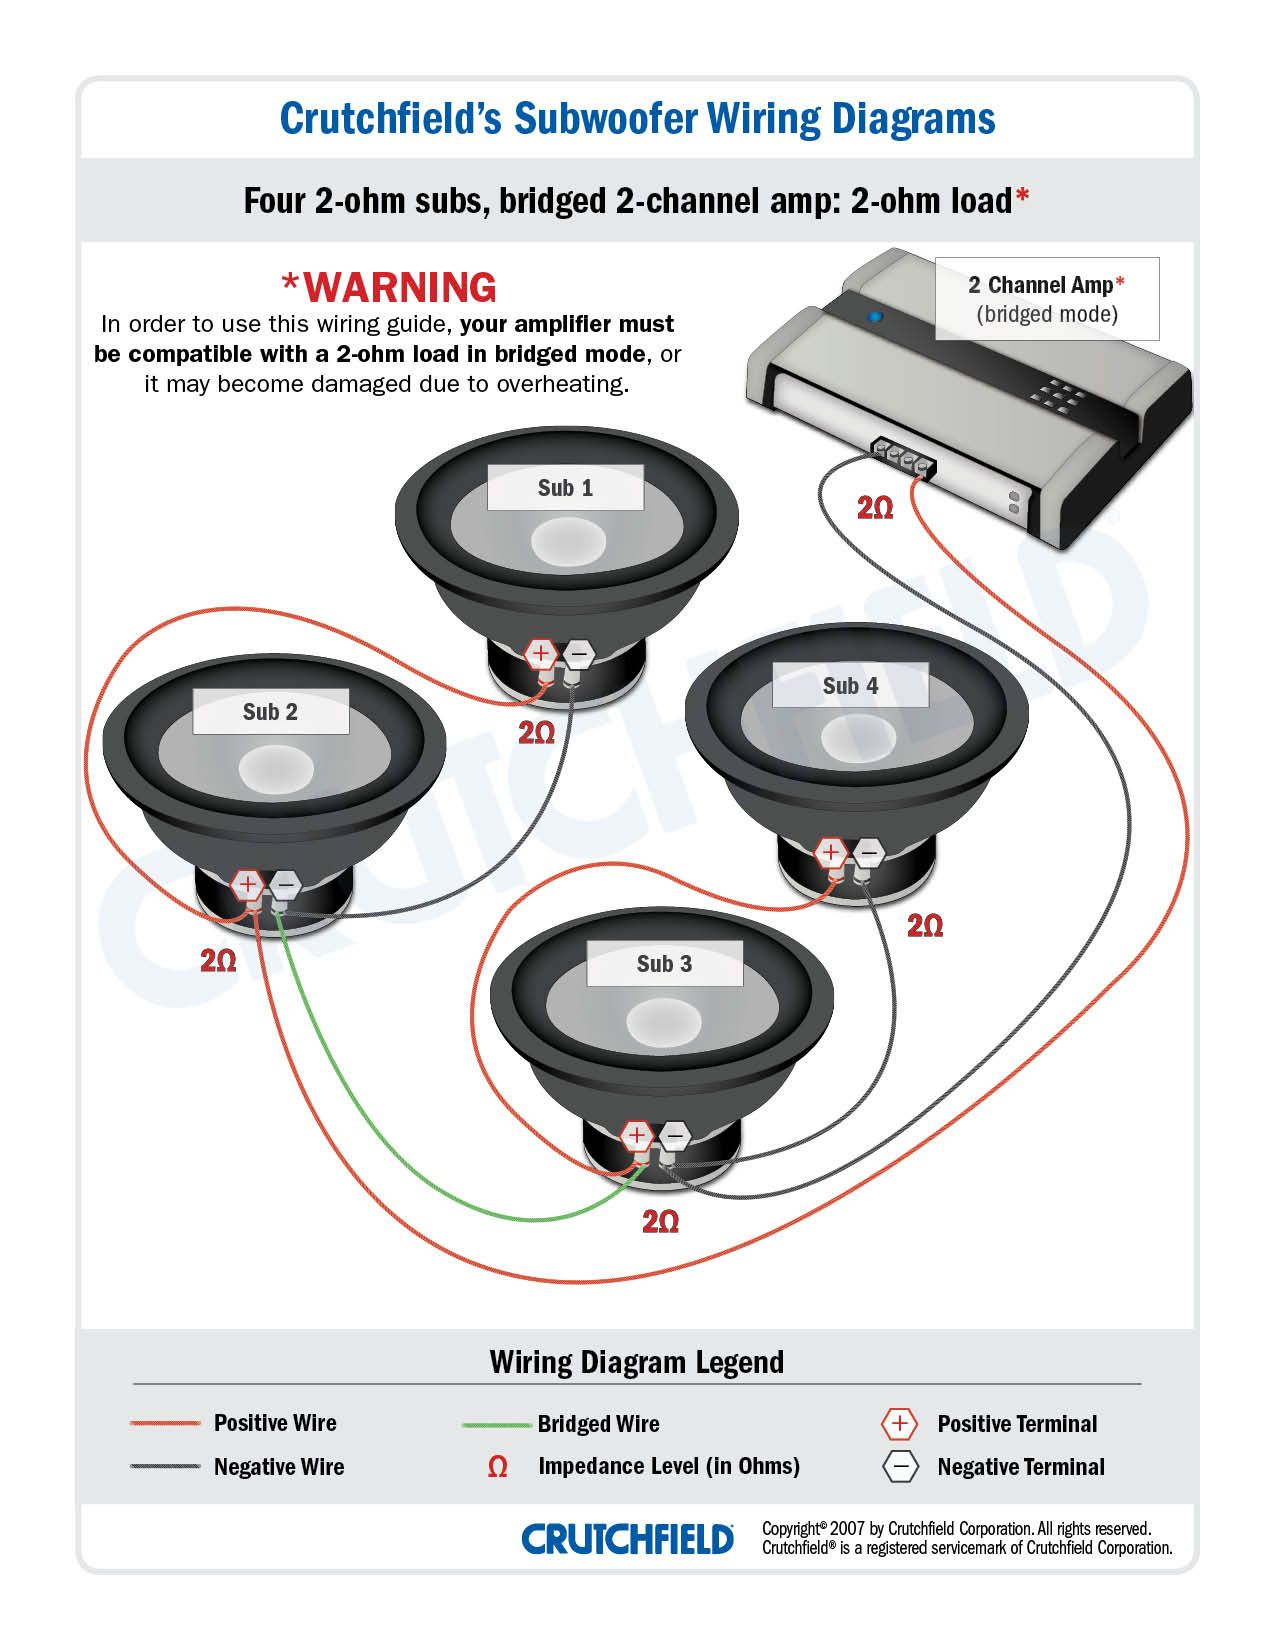 Subwoofer Wiring Diagram Ohms: Top 10 Subwoofer Wiring Diagram Free Download 4 SVC 2 Ohm 2 Ch Low rh:pinterest.com,Design